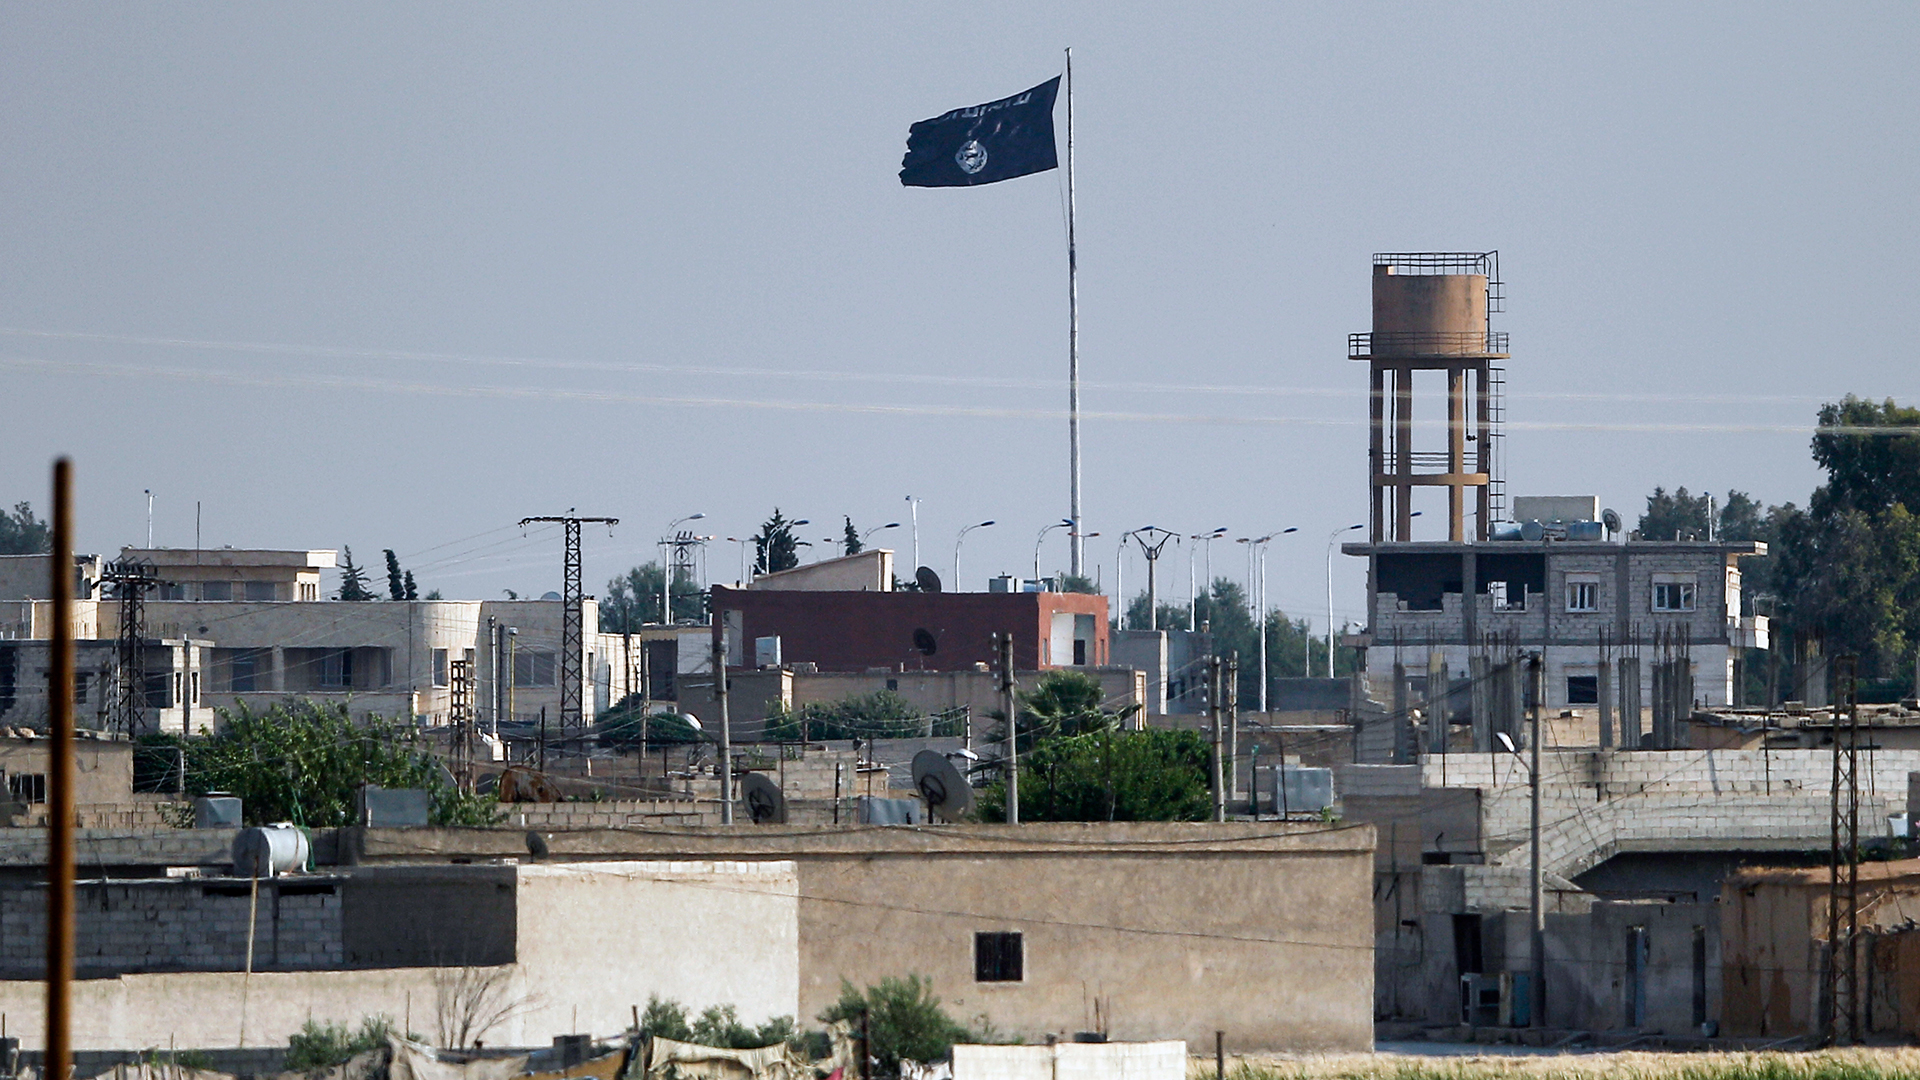 Islamic State ISIS flag in Syria-159532.jpg34354598